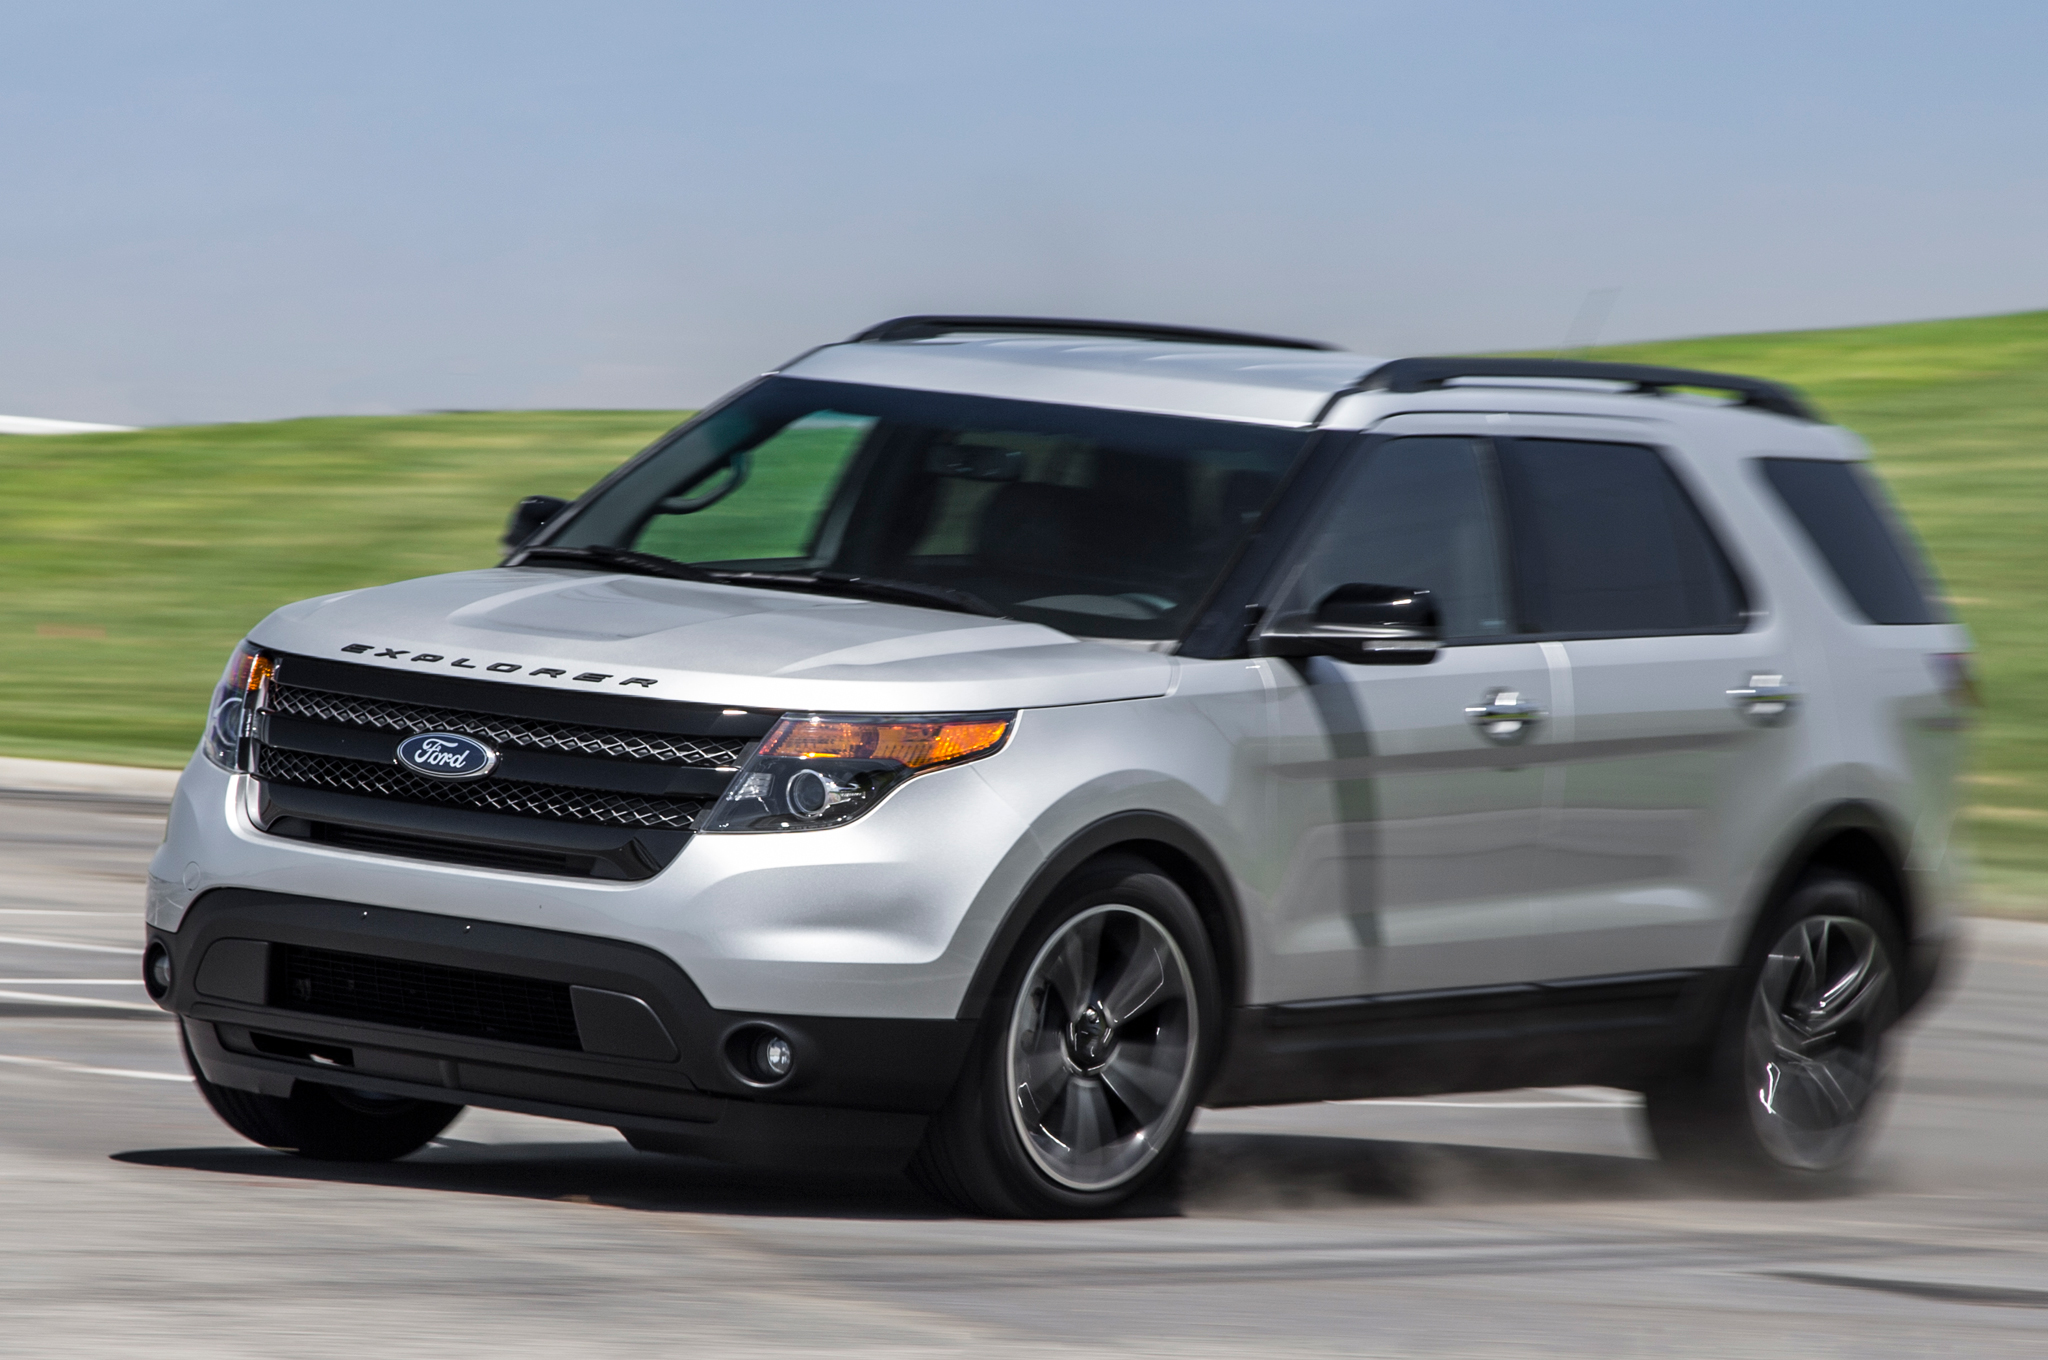 2013 Ford Explorer Sport For Sale >> Ford Recalls 213 000 Explorer Suvs For Door Handle Issue